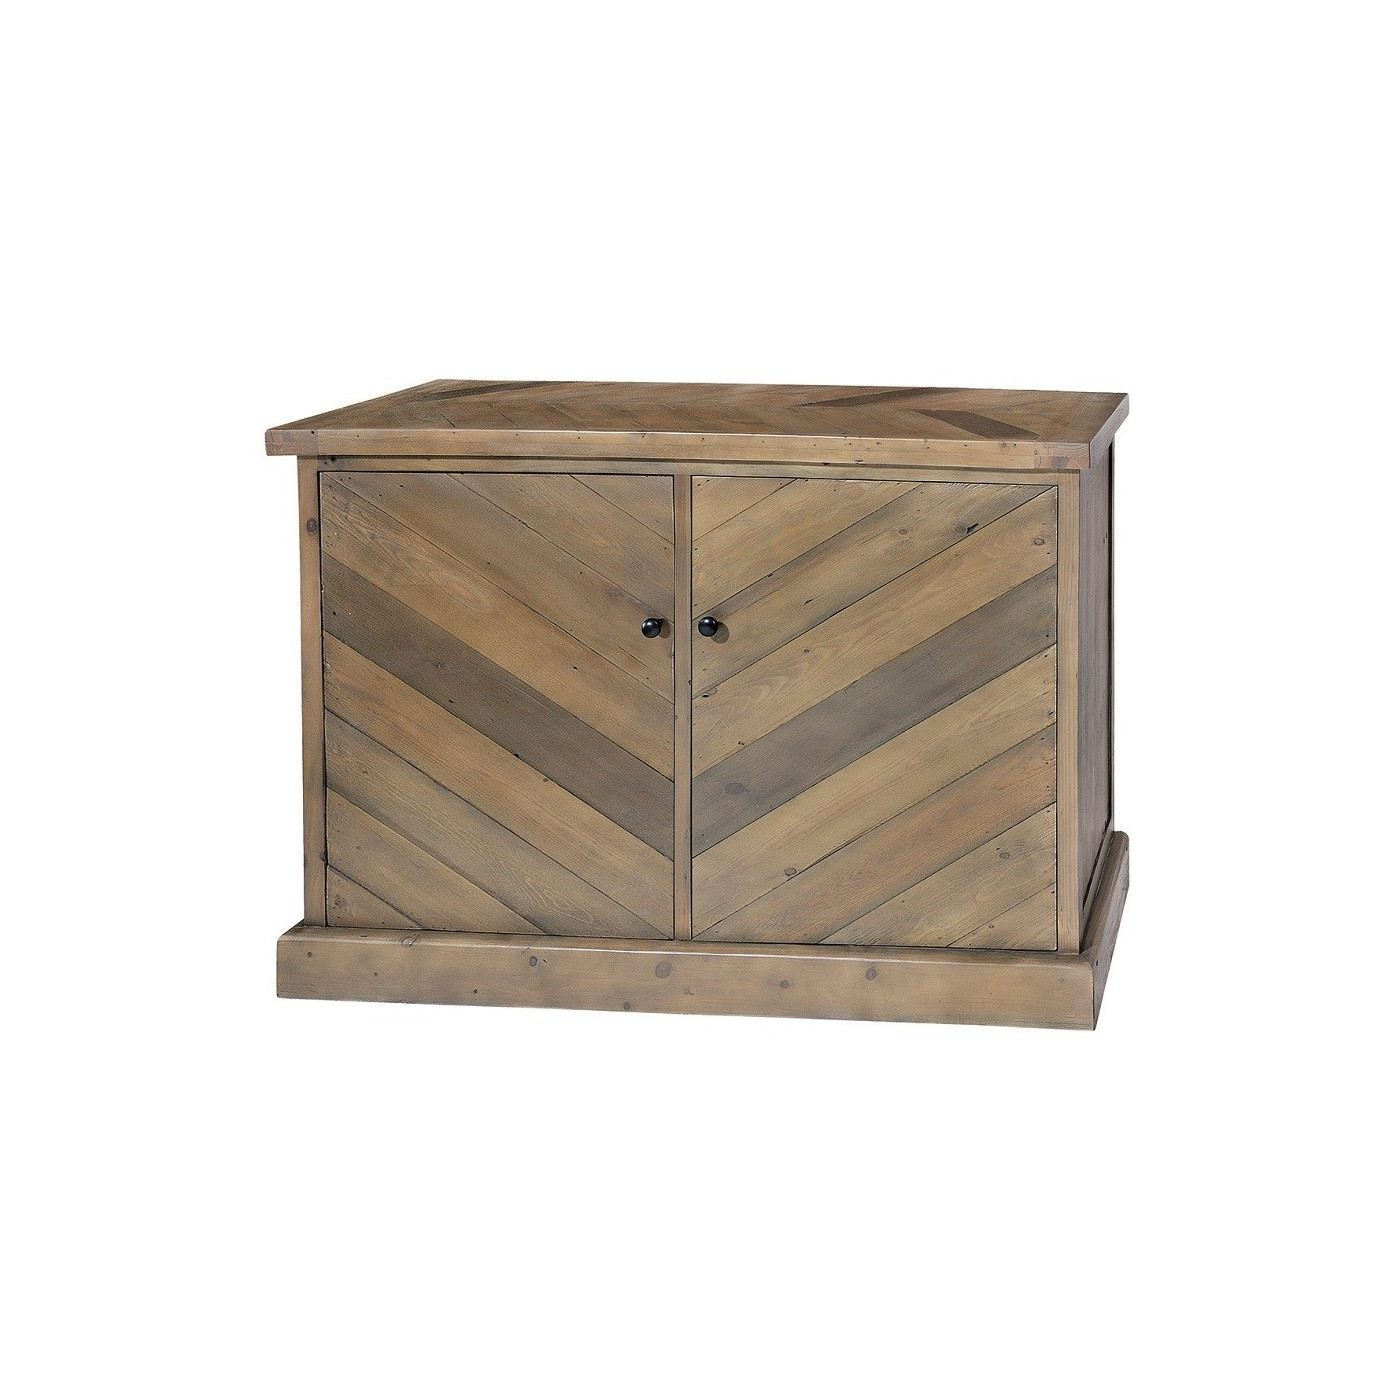 2019 Parquet Reclaimed Pine Small Sideboard (Gallery 11 of 20)